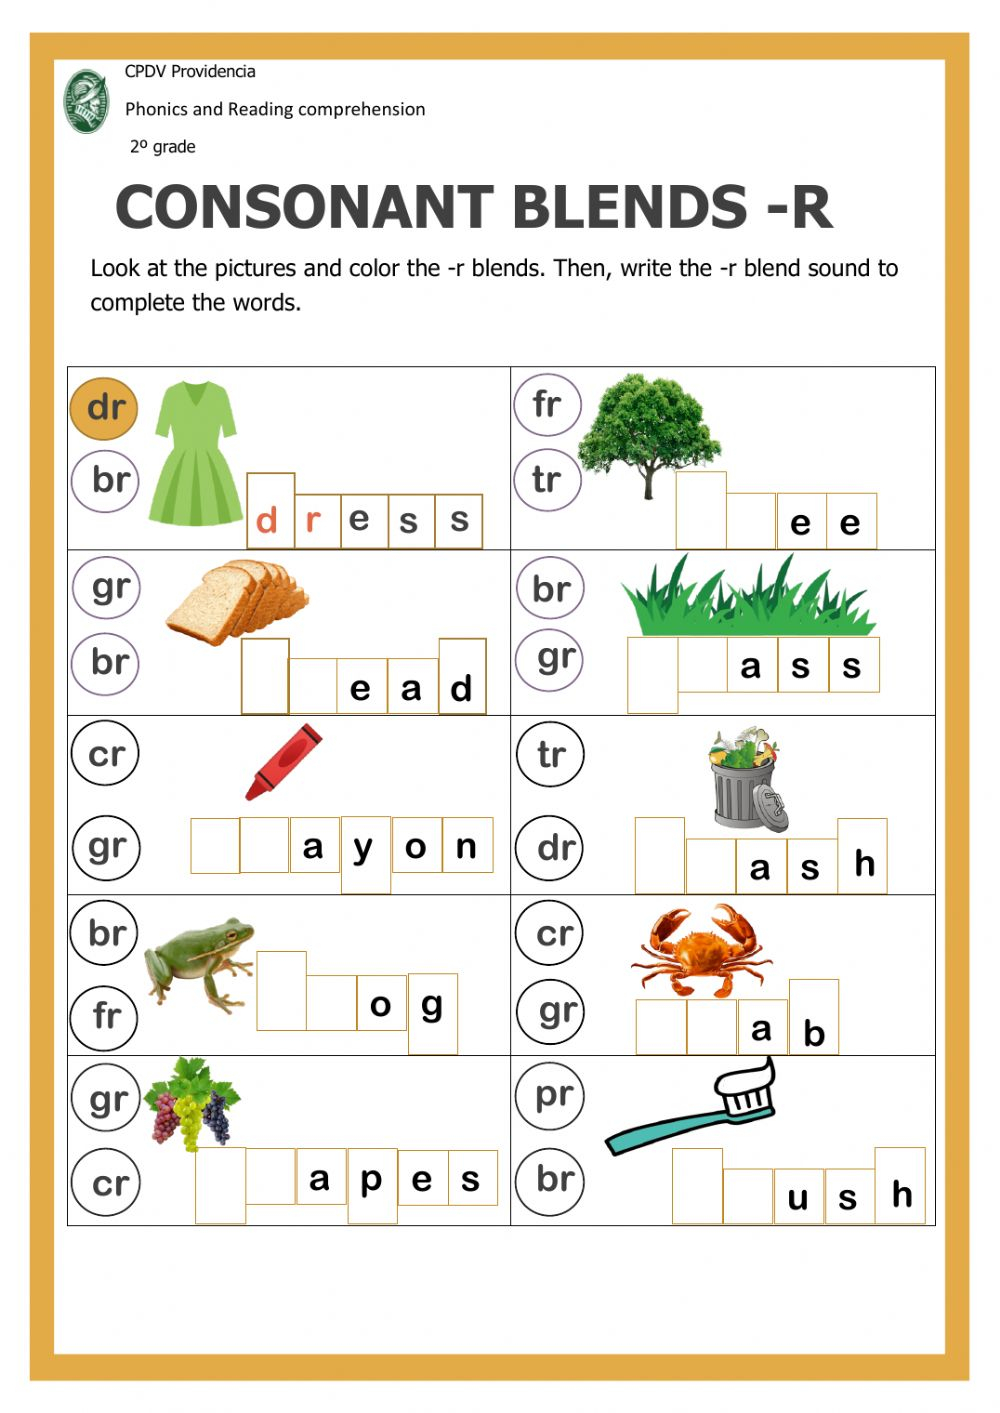 Consonant Blends With -R - Interactive Worksheet within Letter Blends Worksheets